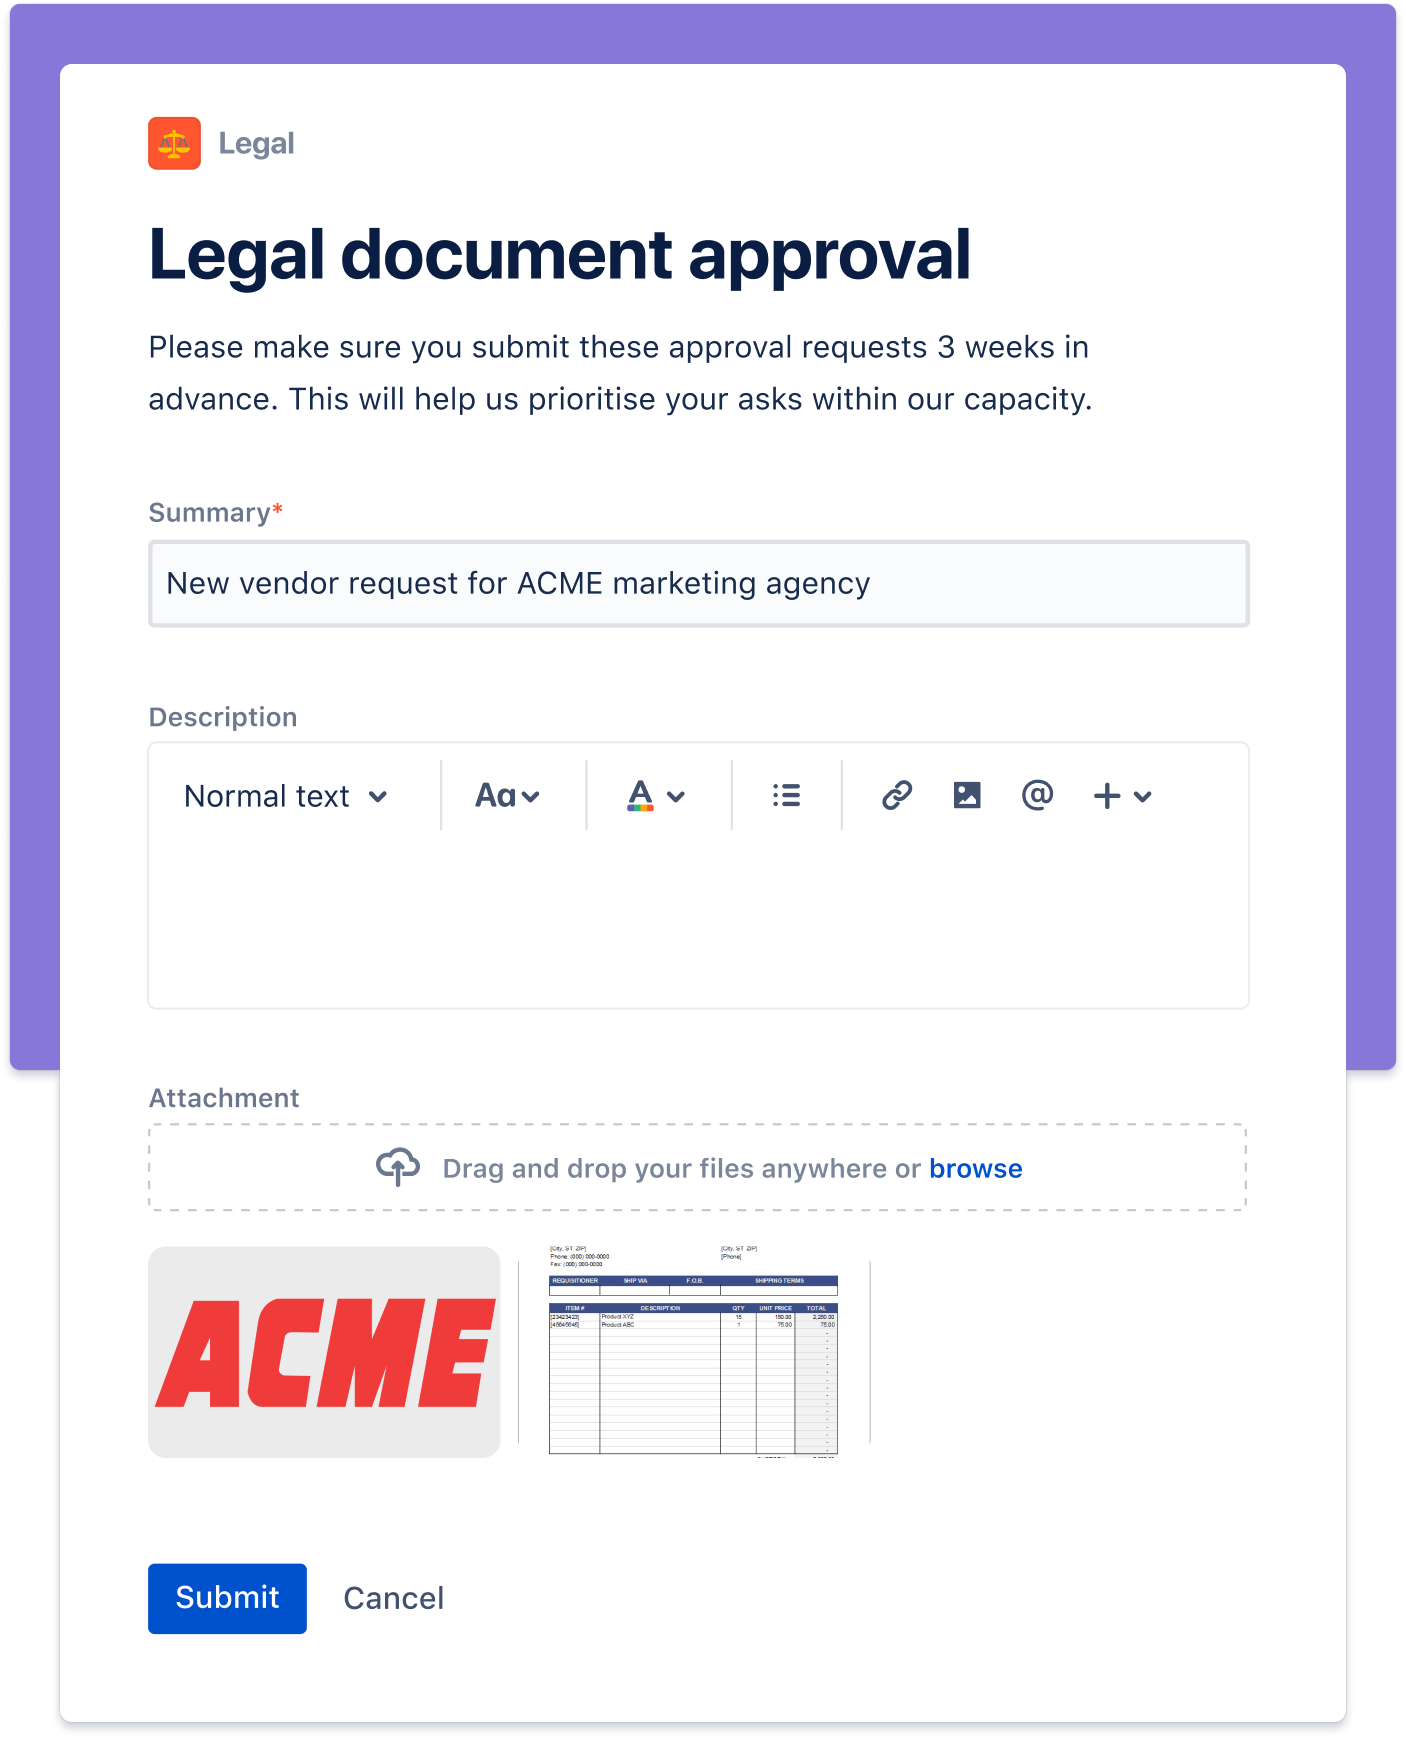 Legal document approval screenshot